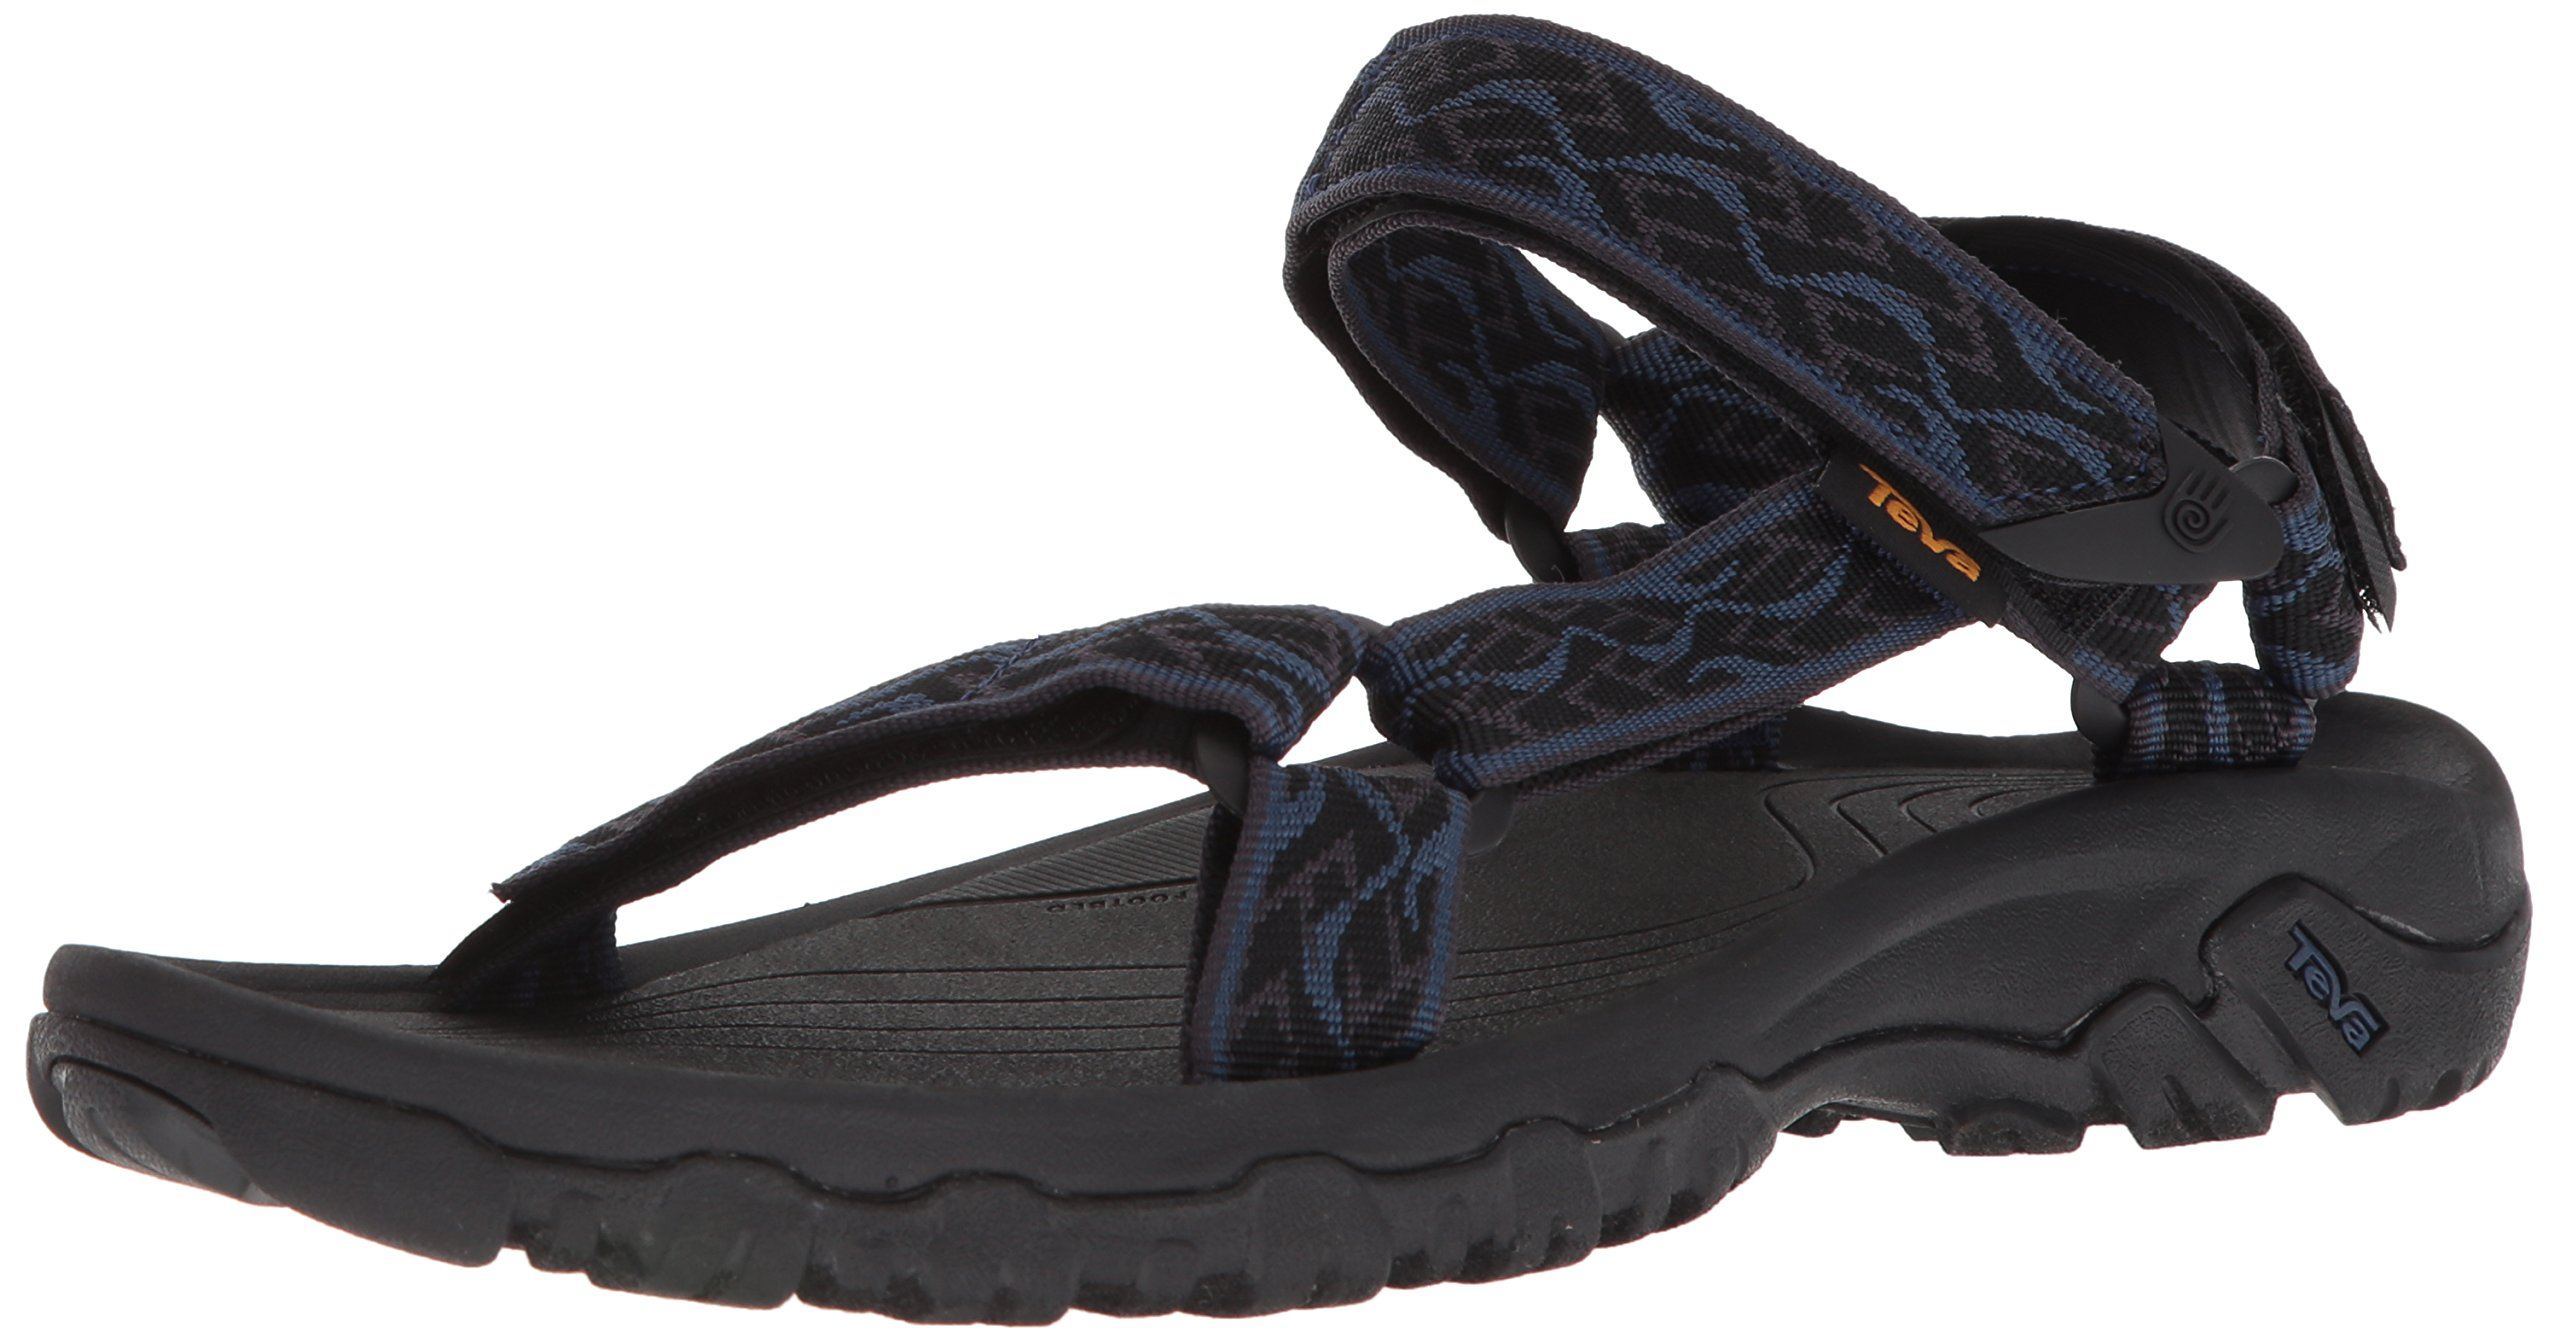 Teva Men's M Hurricane 4 Sport Sandal, Wavy Trail Navy, 10 M US by Teva